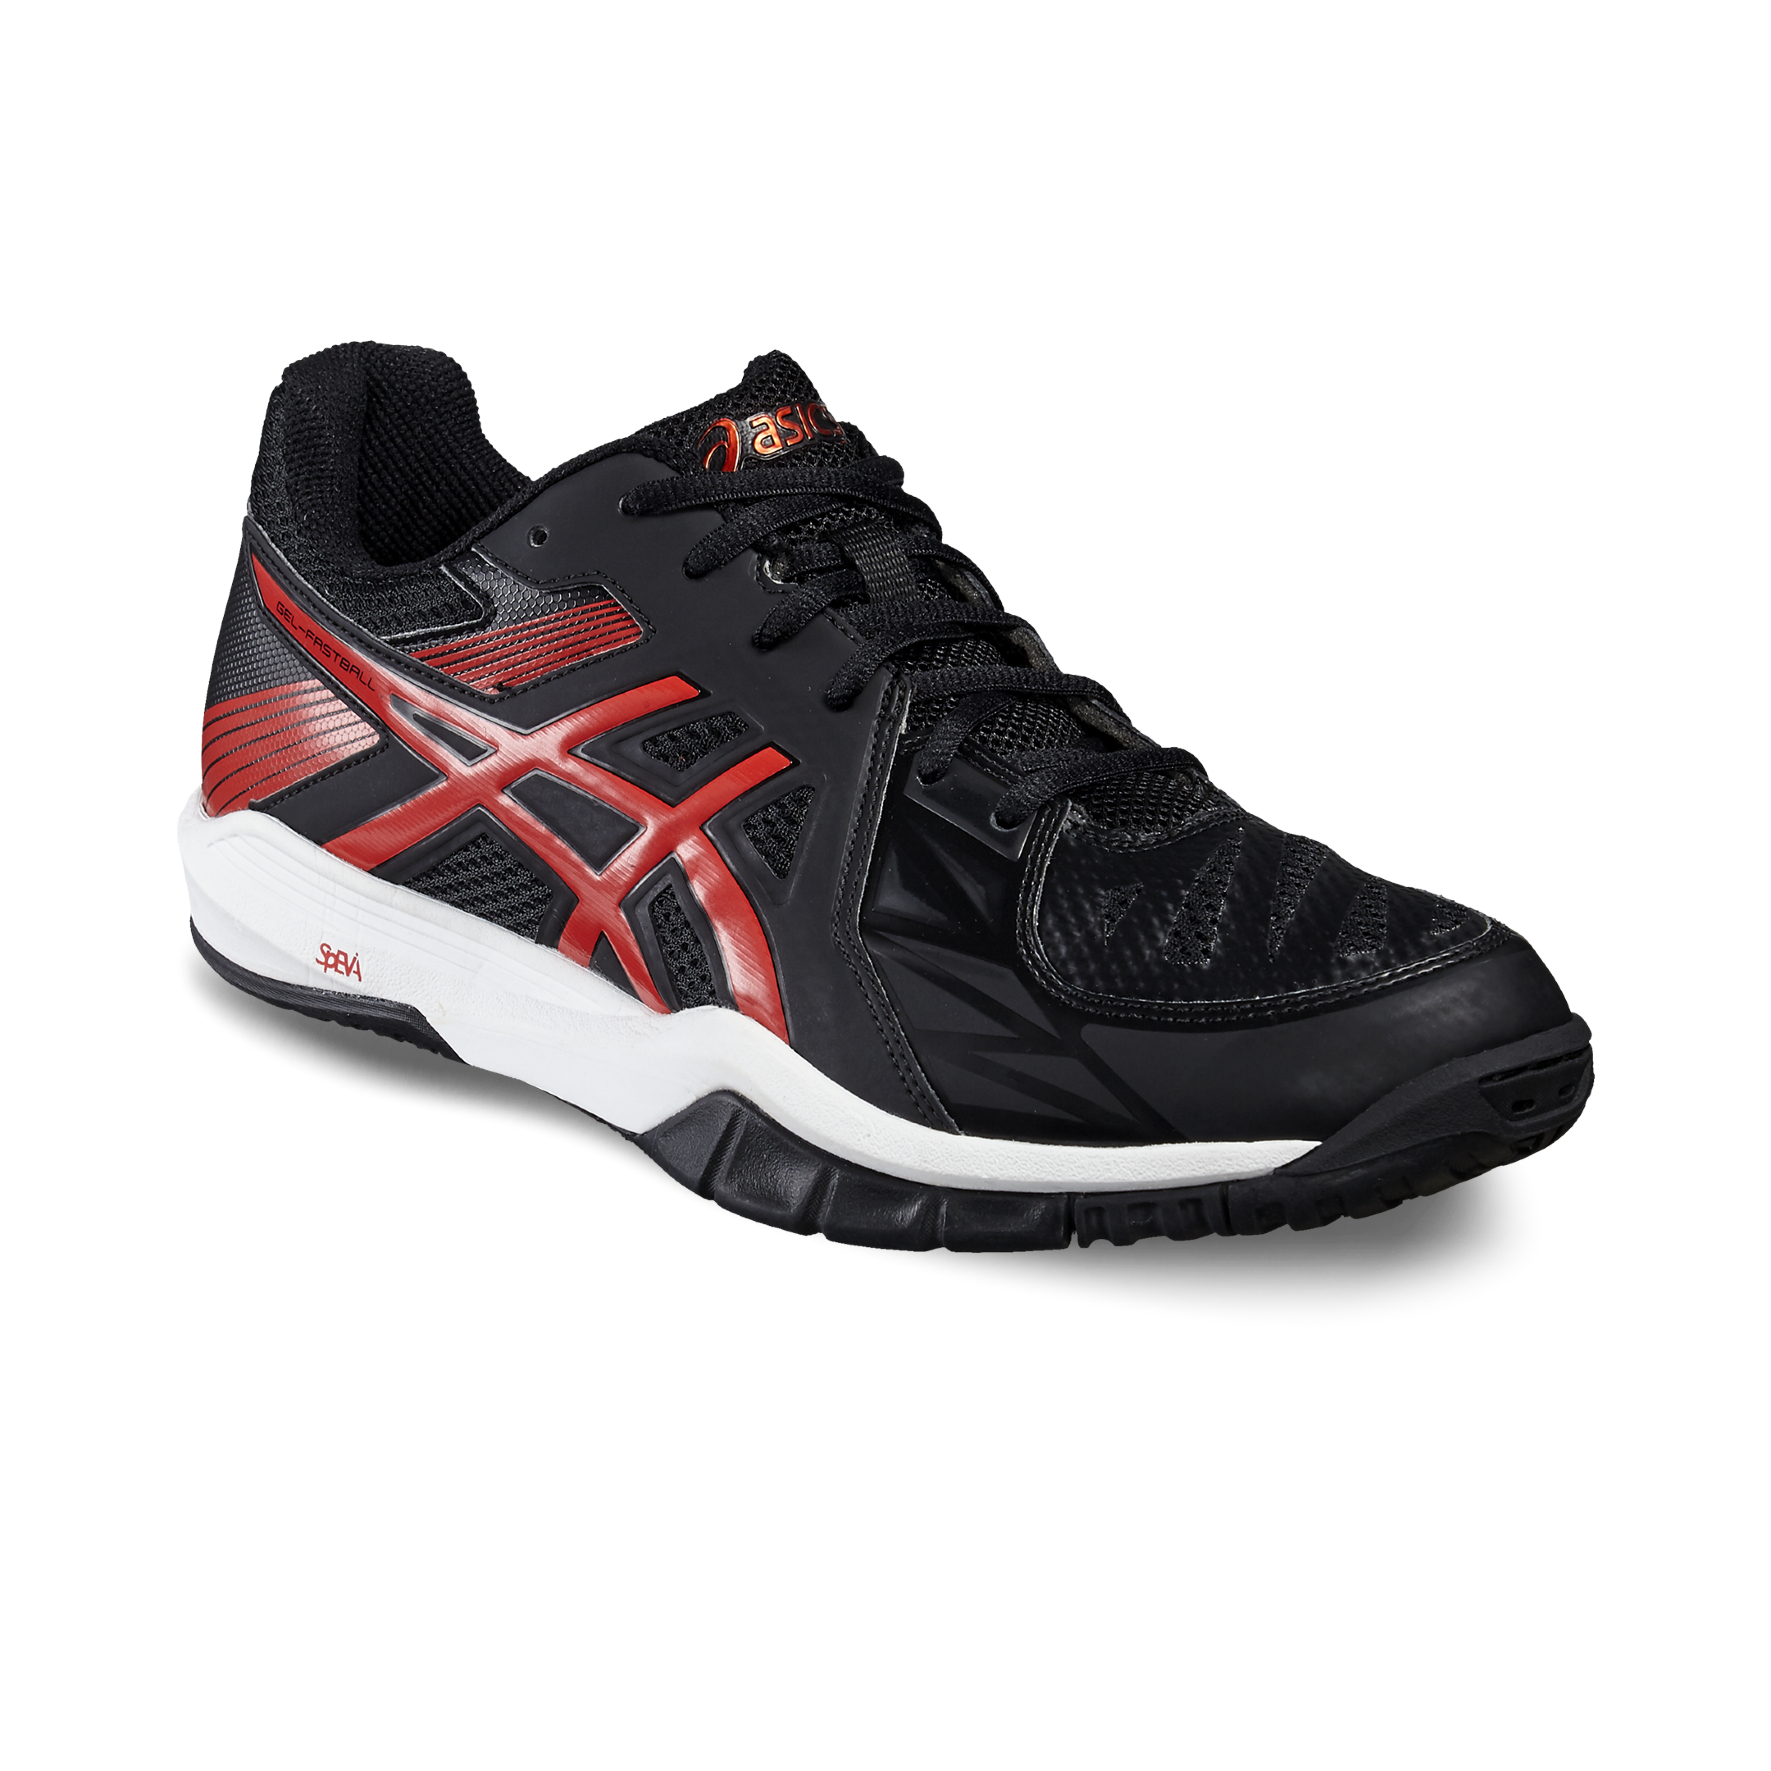 ASICS GEL-Fastball